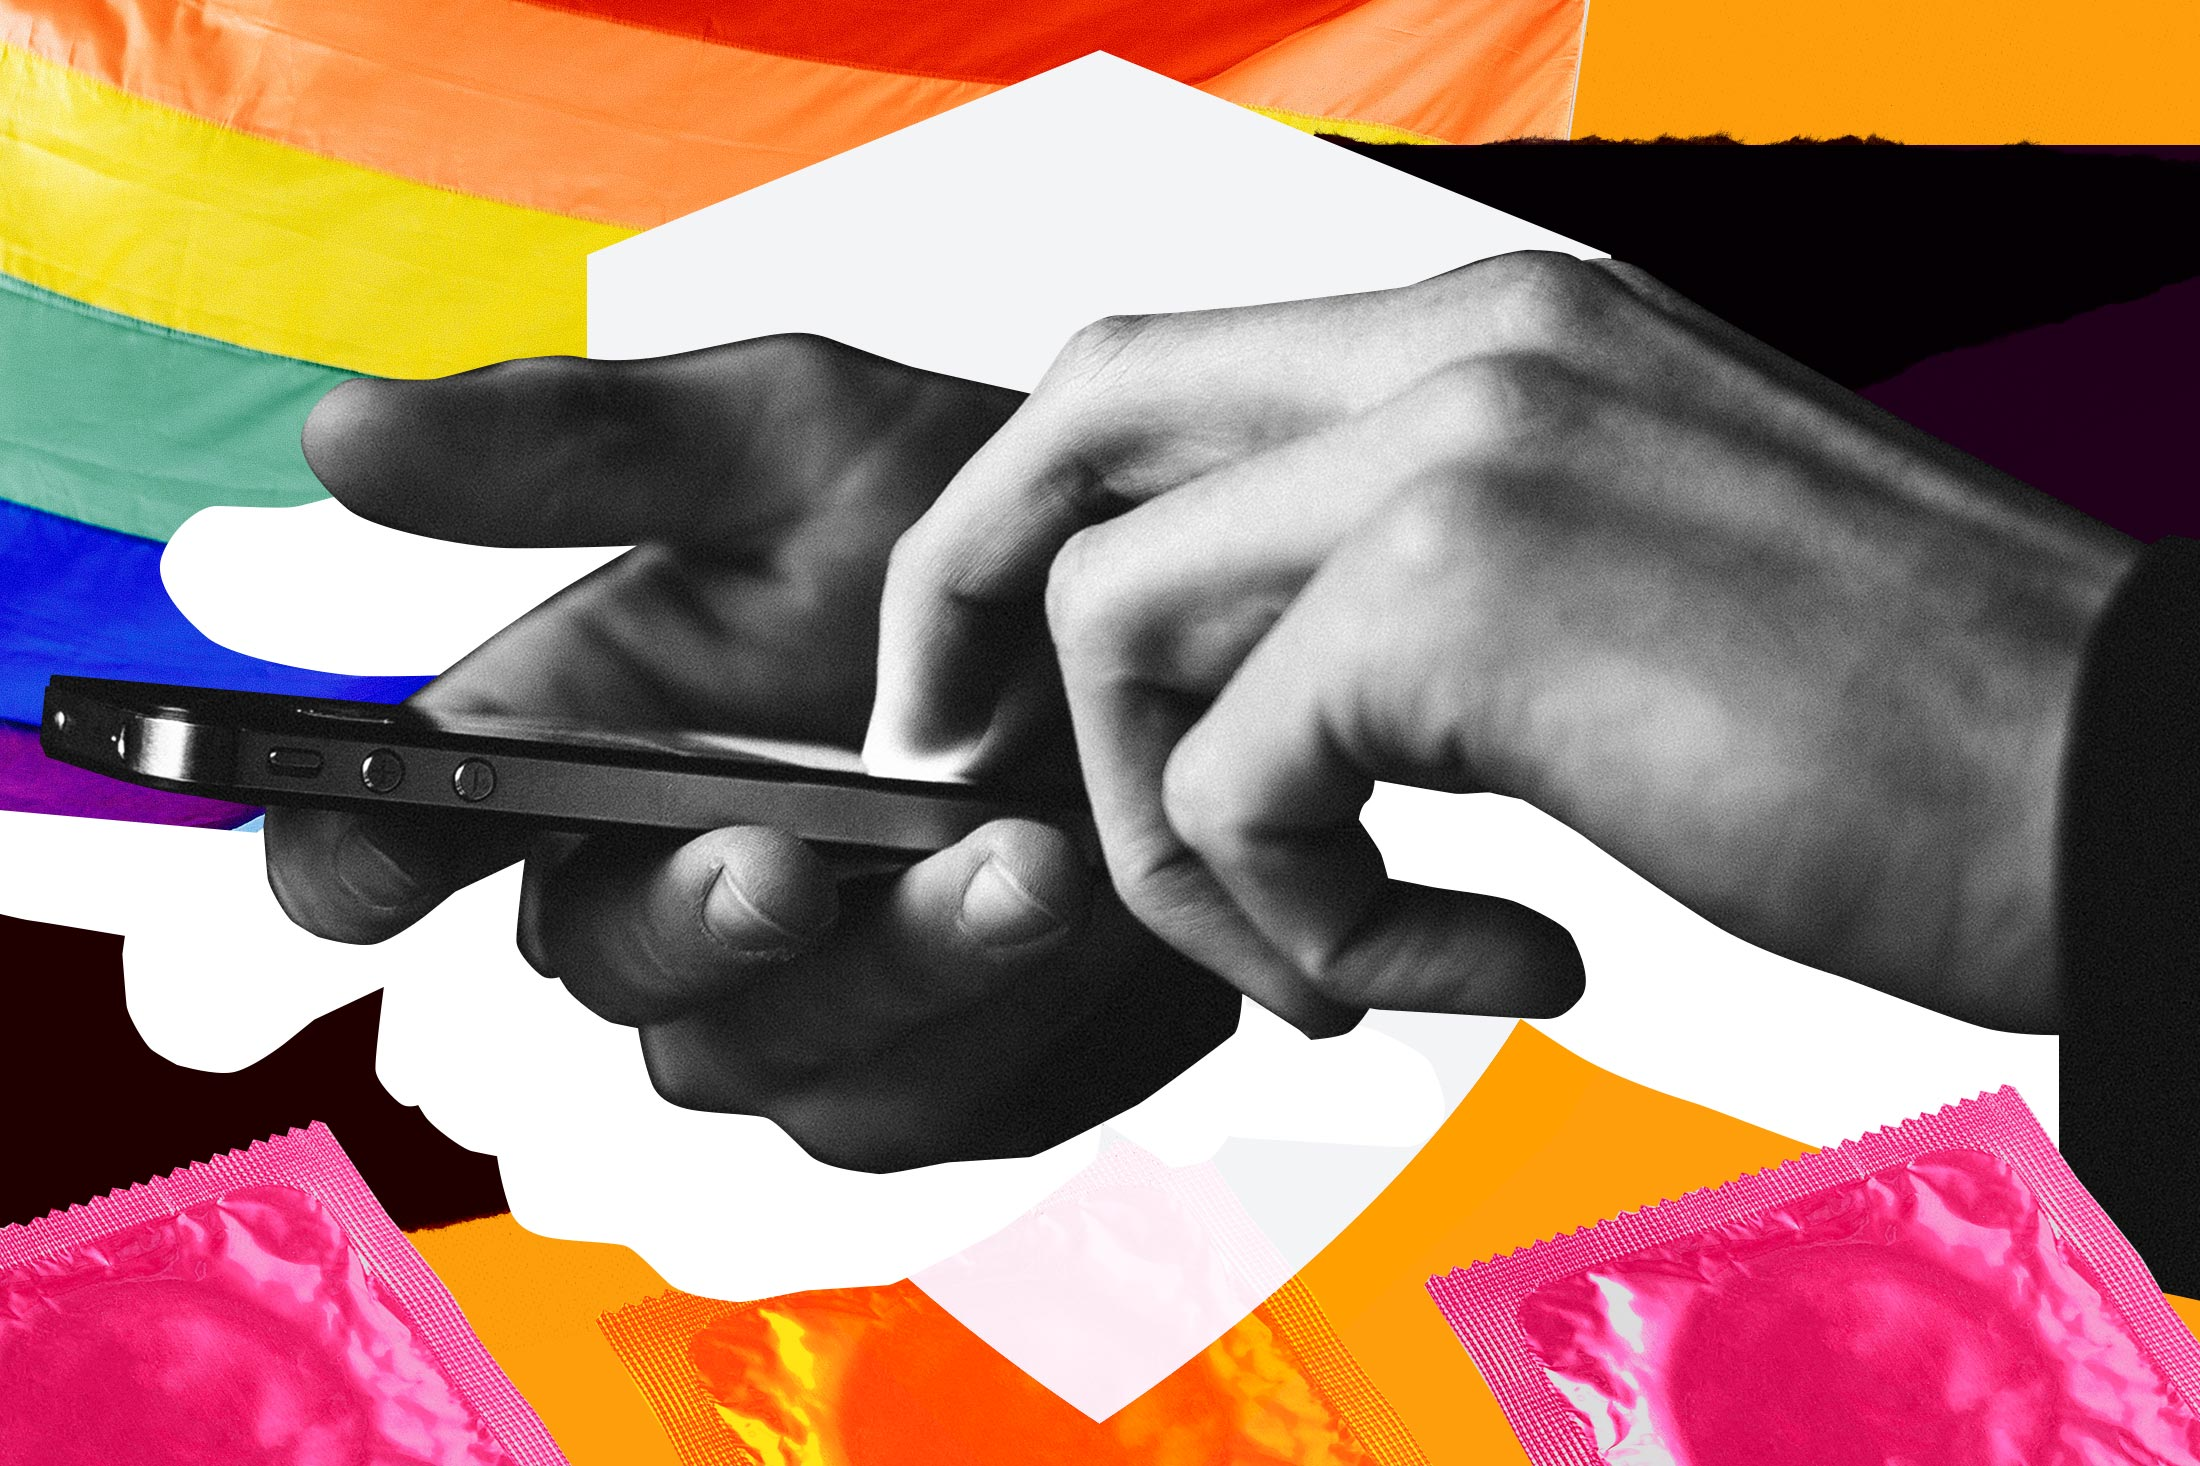 Hands holding phone over background of pride flags and condoms.